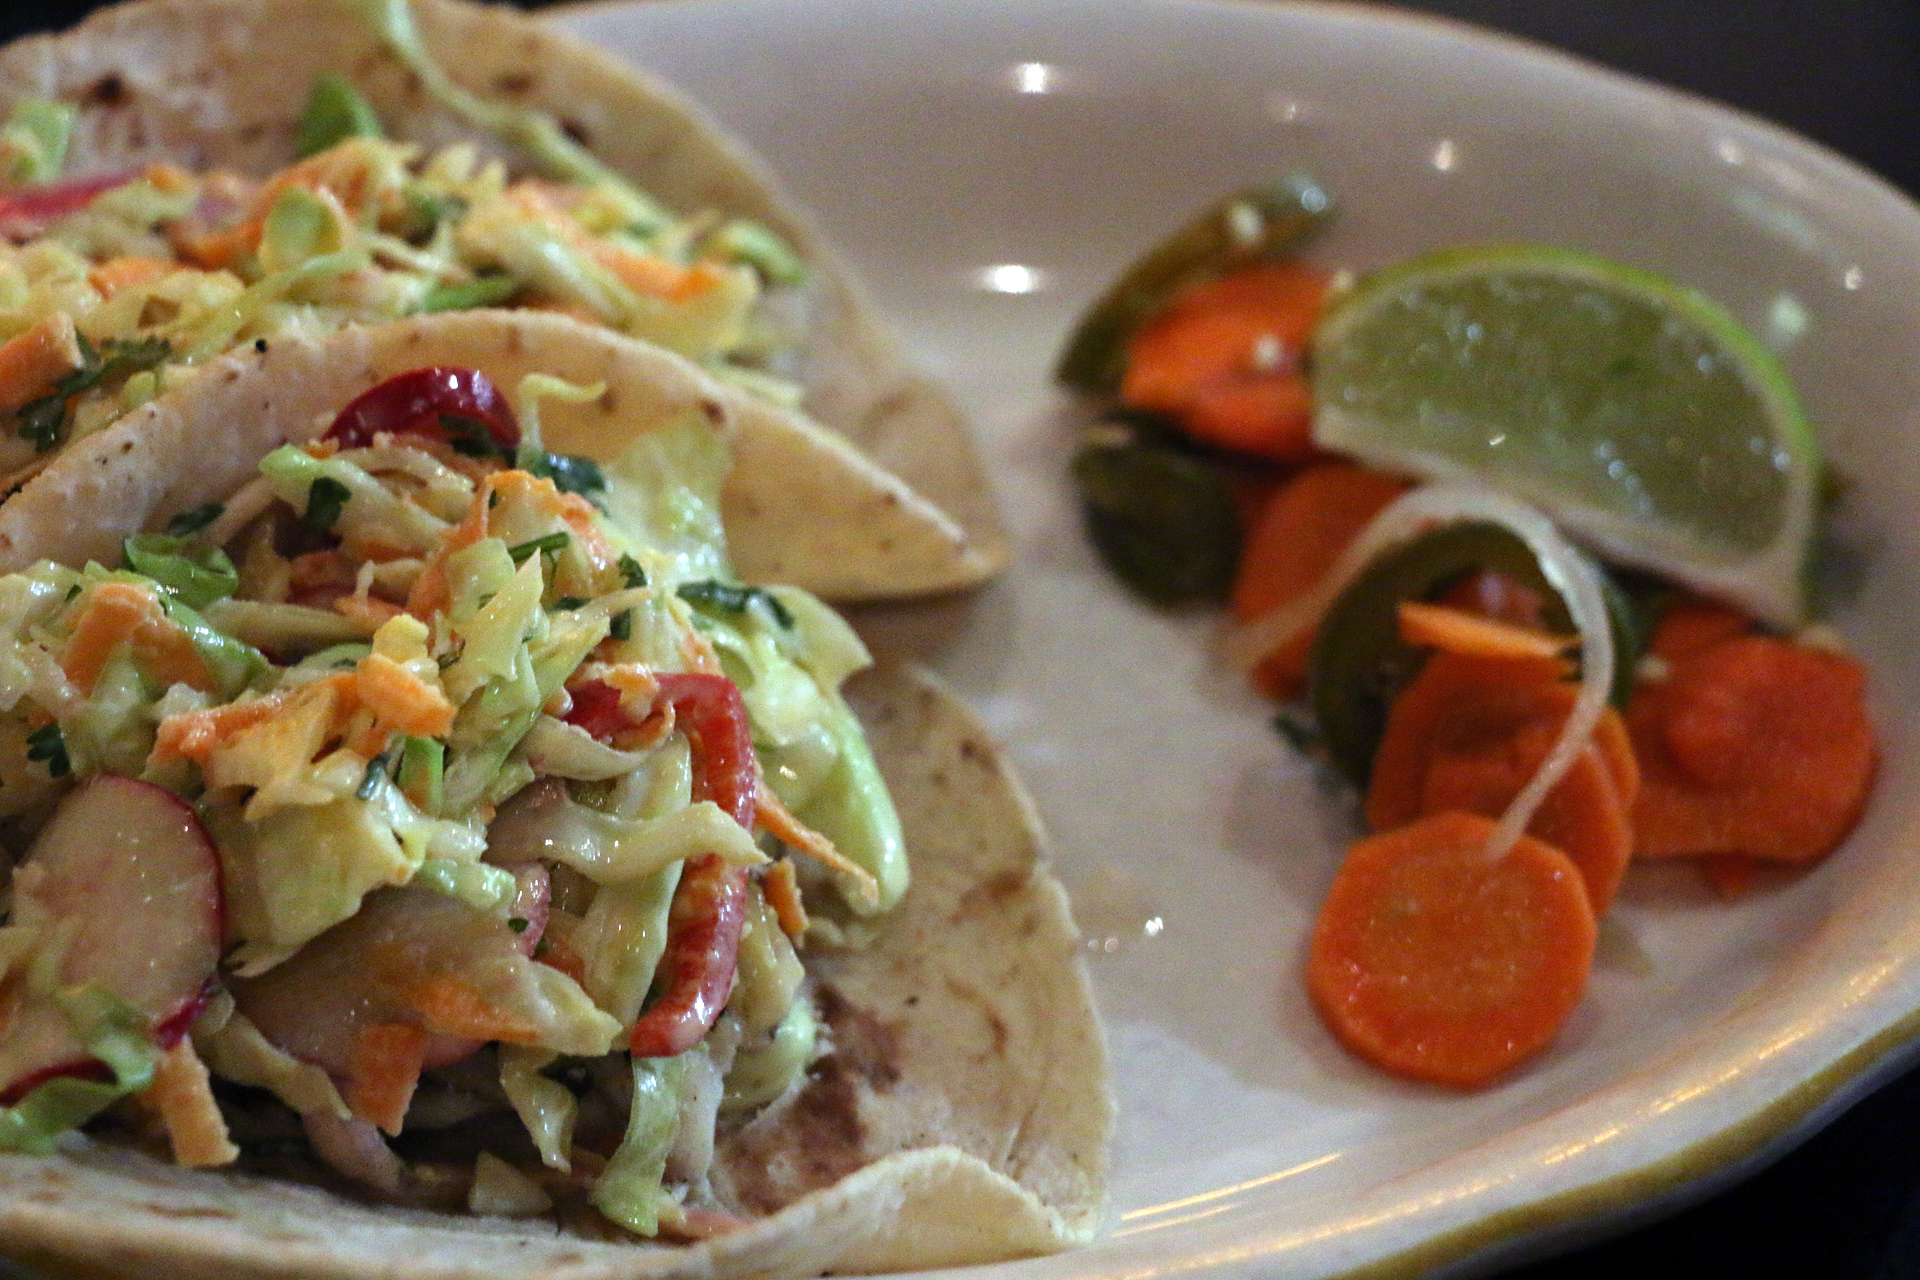 Where to go for fish tacos 6 top spots in oakland and for Cod fish tacos